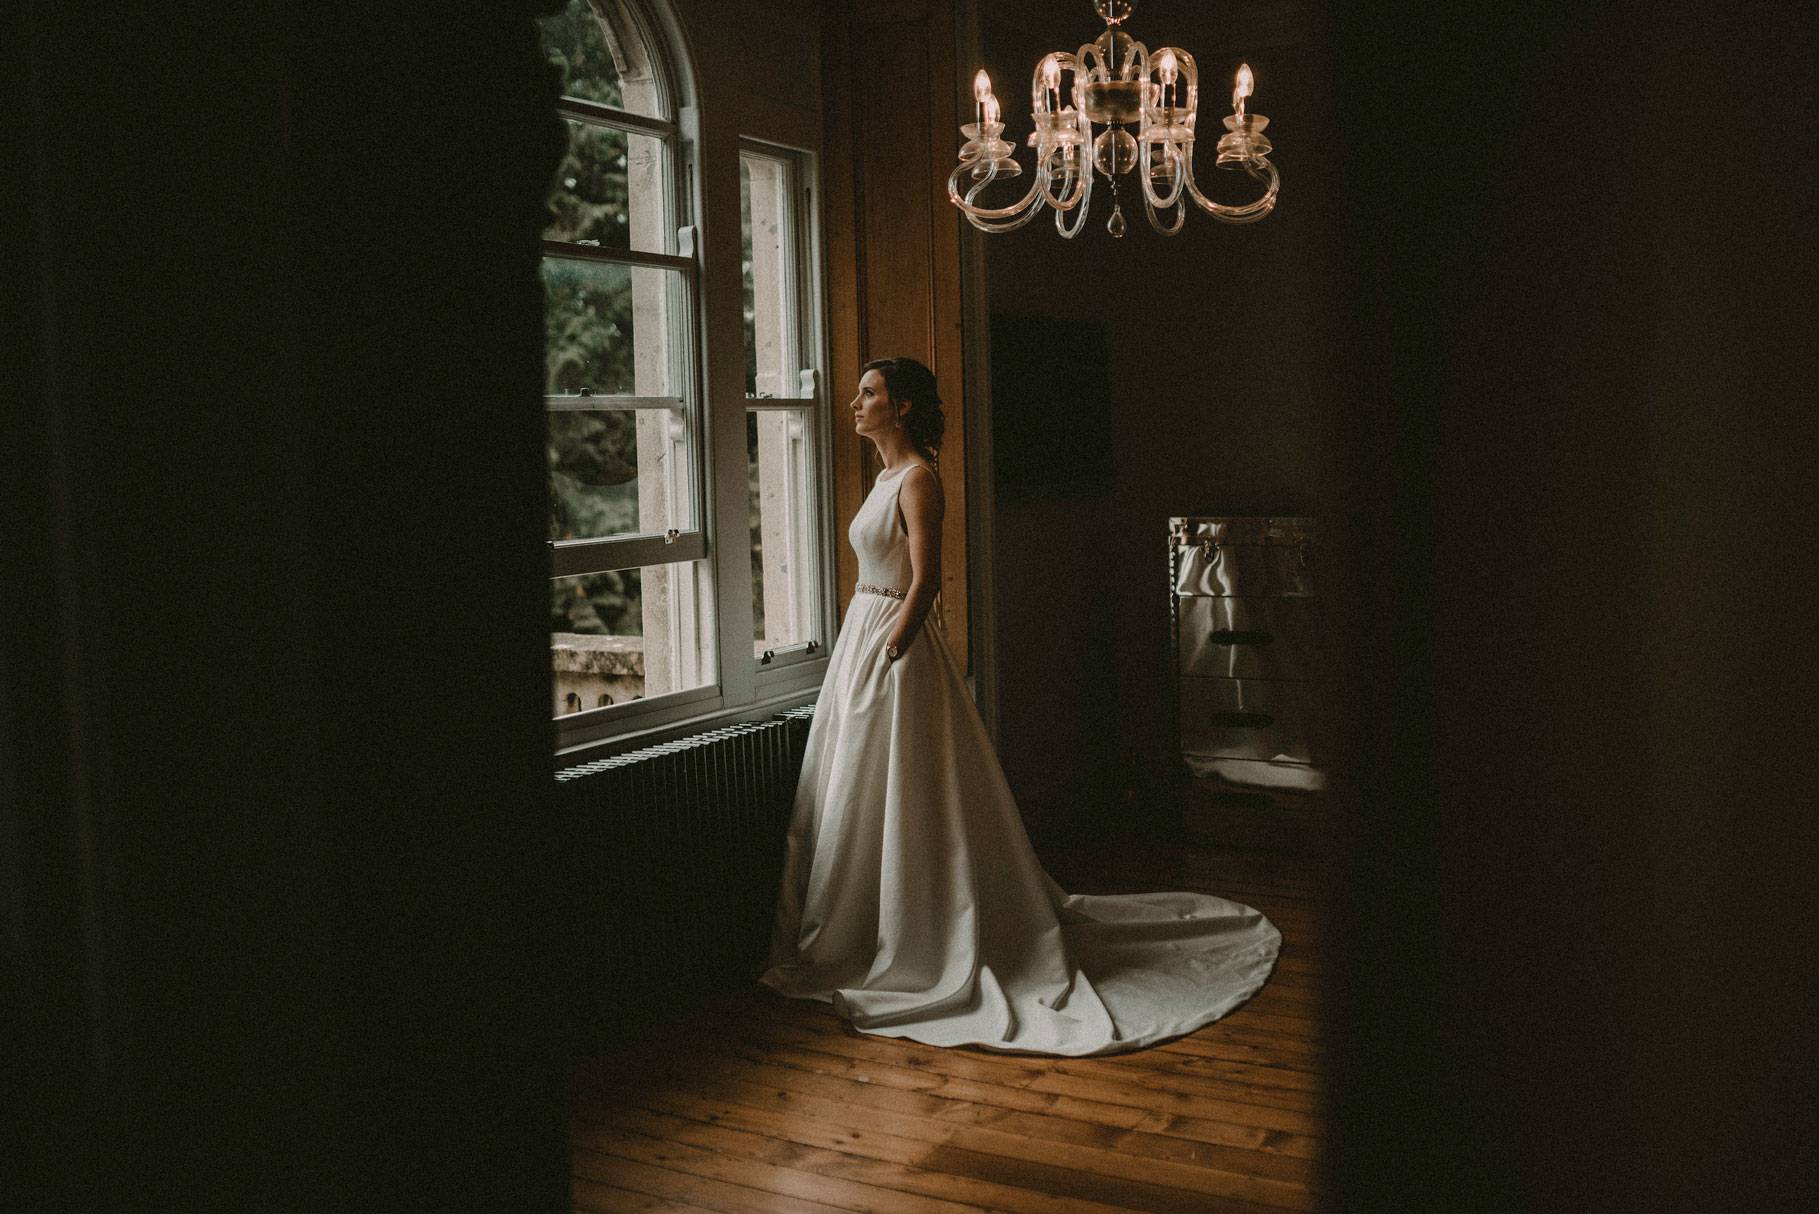 the stunning bride in her dress